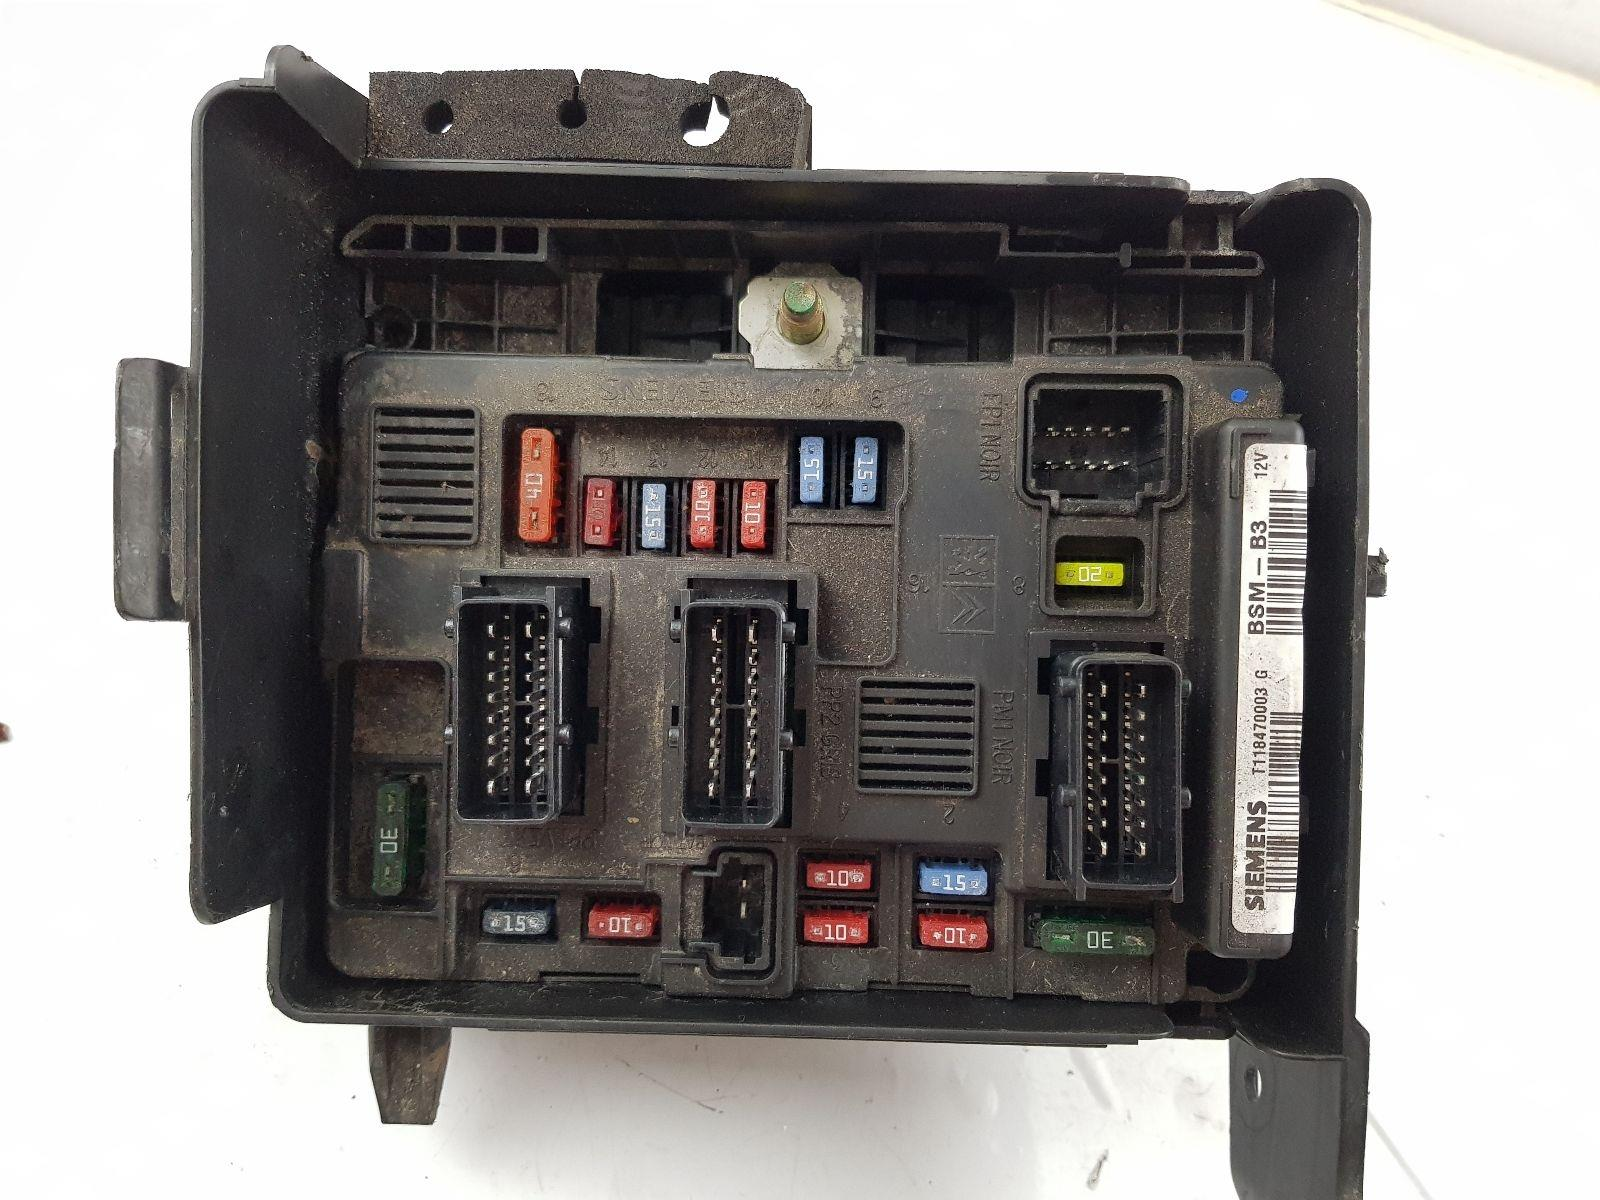 citroen c2 2003 to 2008 fuse box (petrol manual) for sale from scb Audi A4